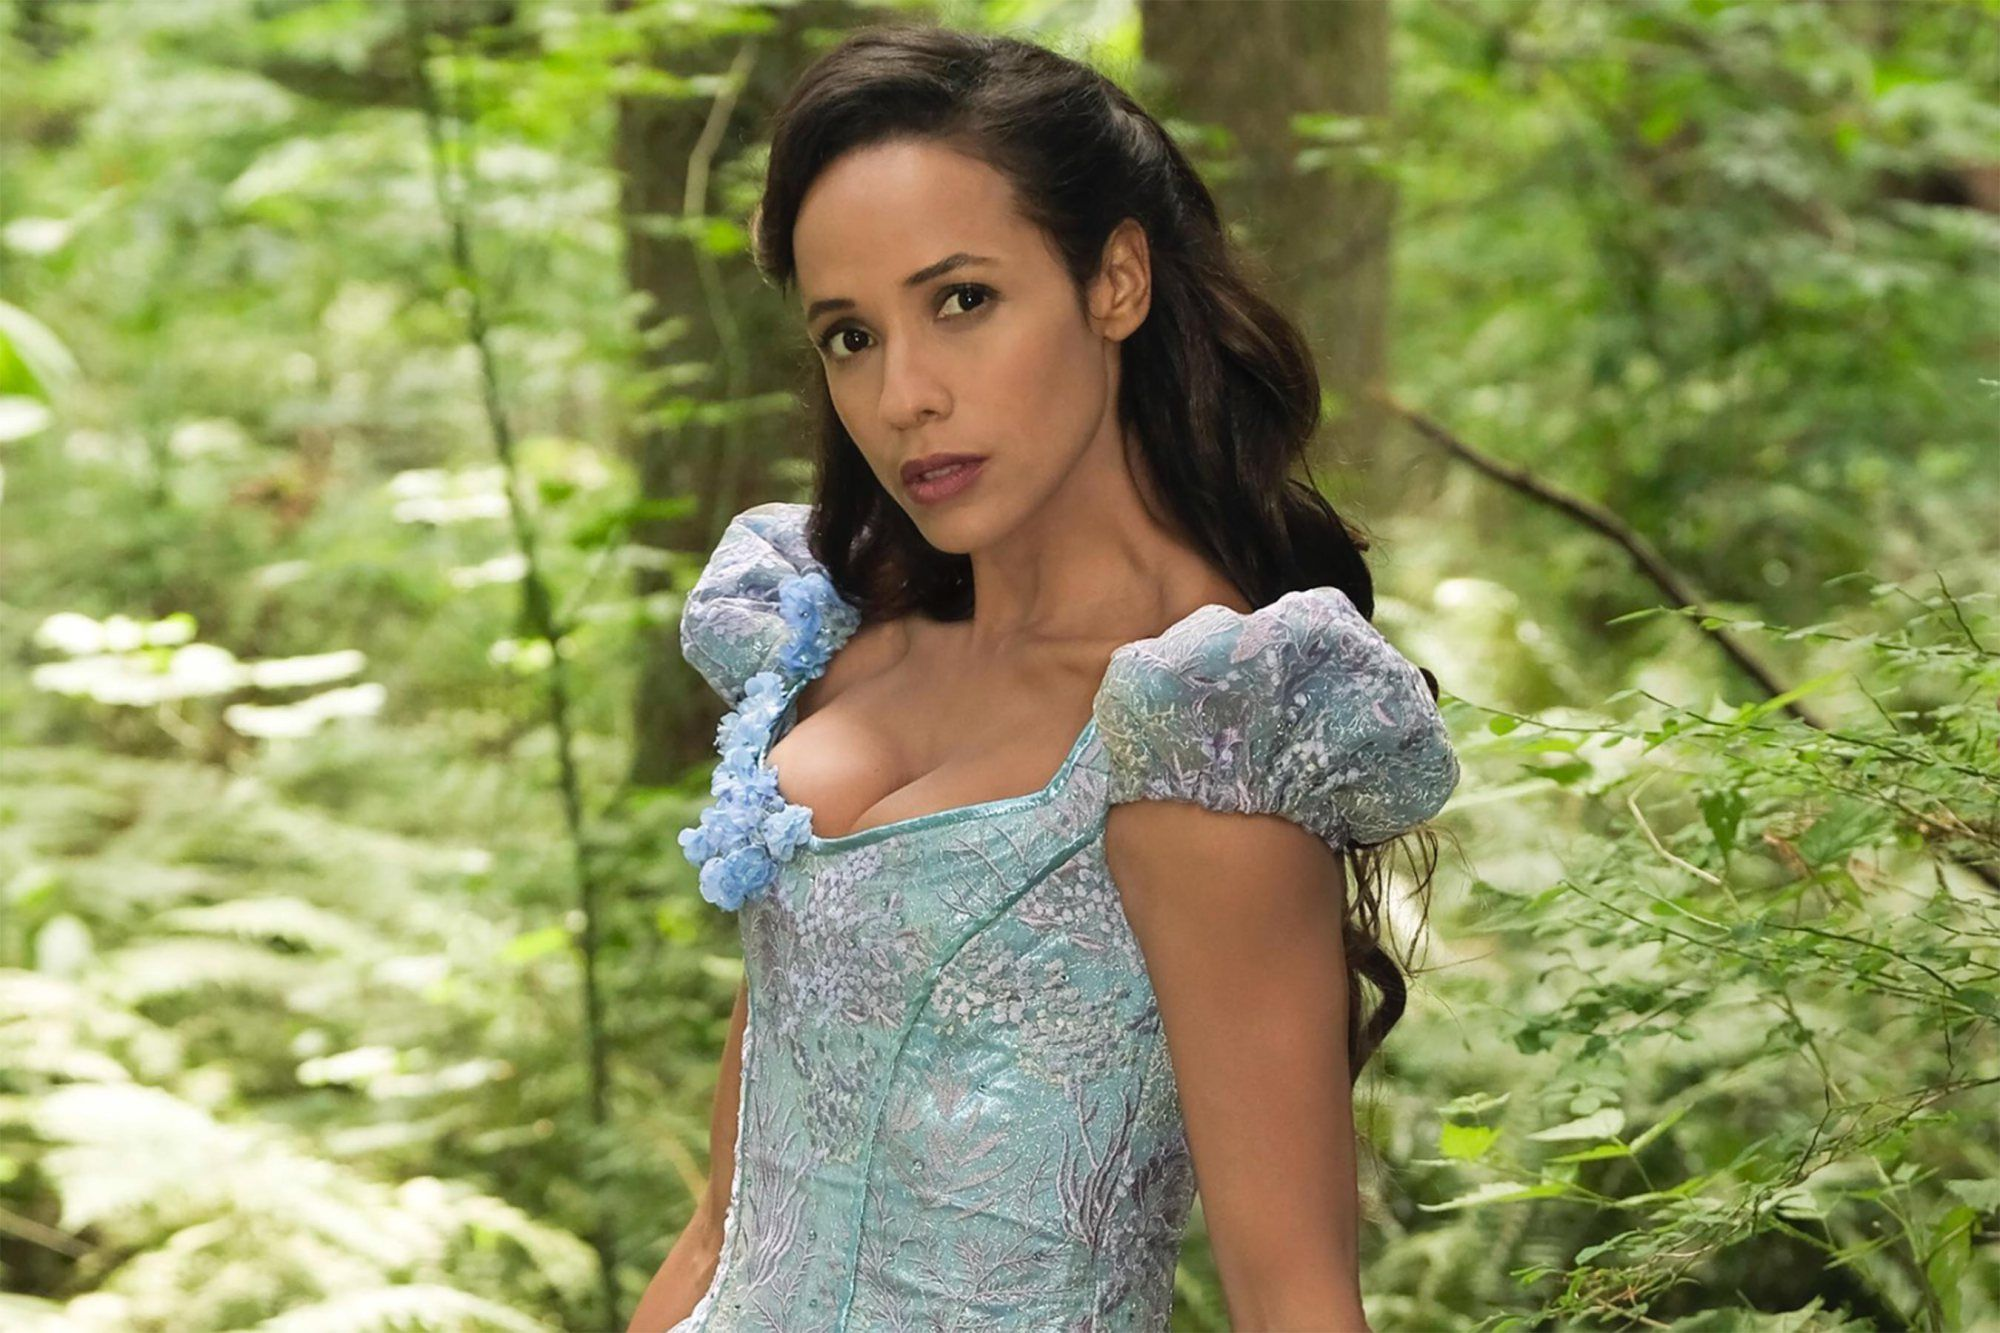 Once Upon a Time's next big storyline pits Cinderella against her evil  step-mother